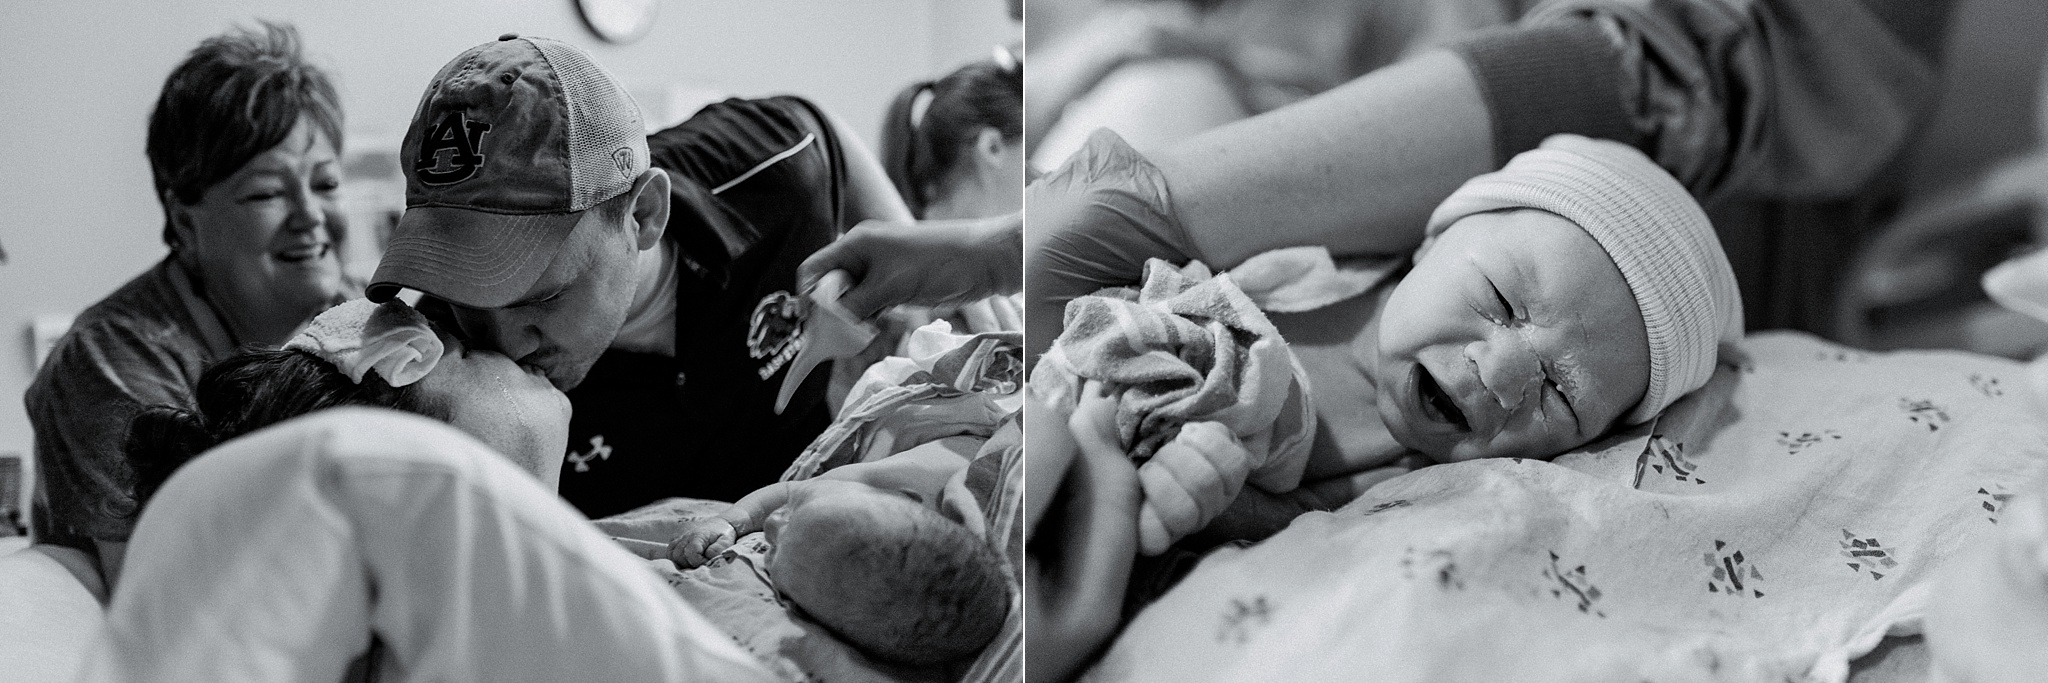 atlanta-birth-photographer-piedmont-fayette-hospital-tituskyle-182.jpg